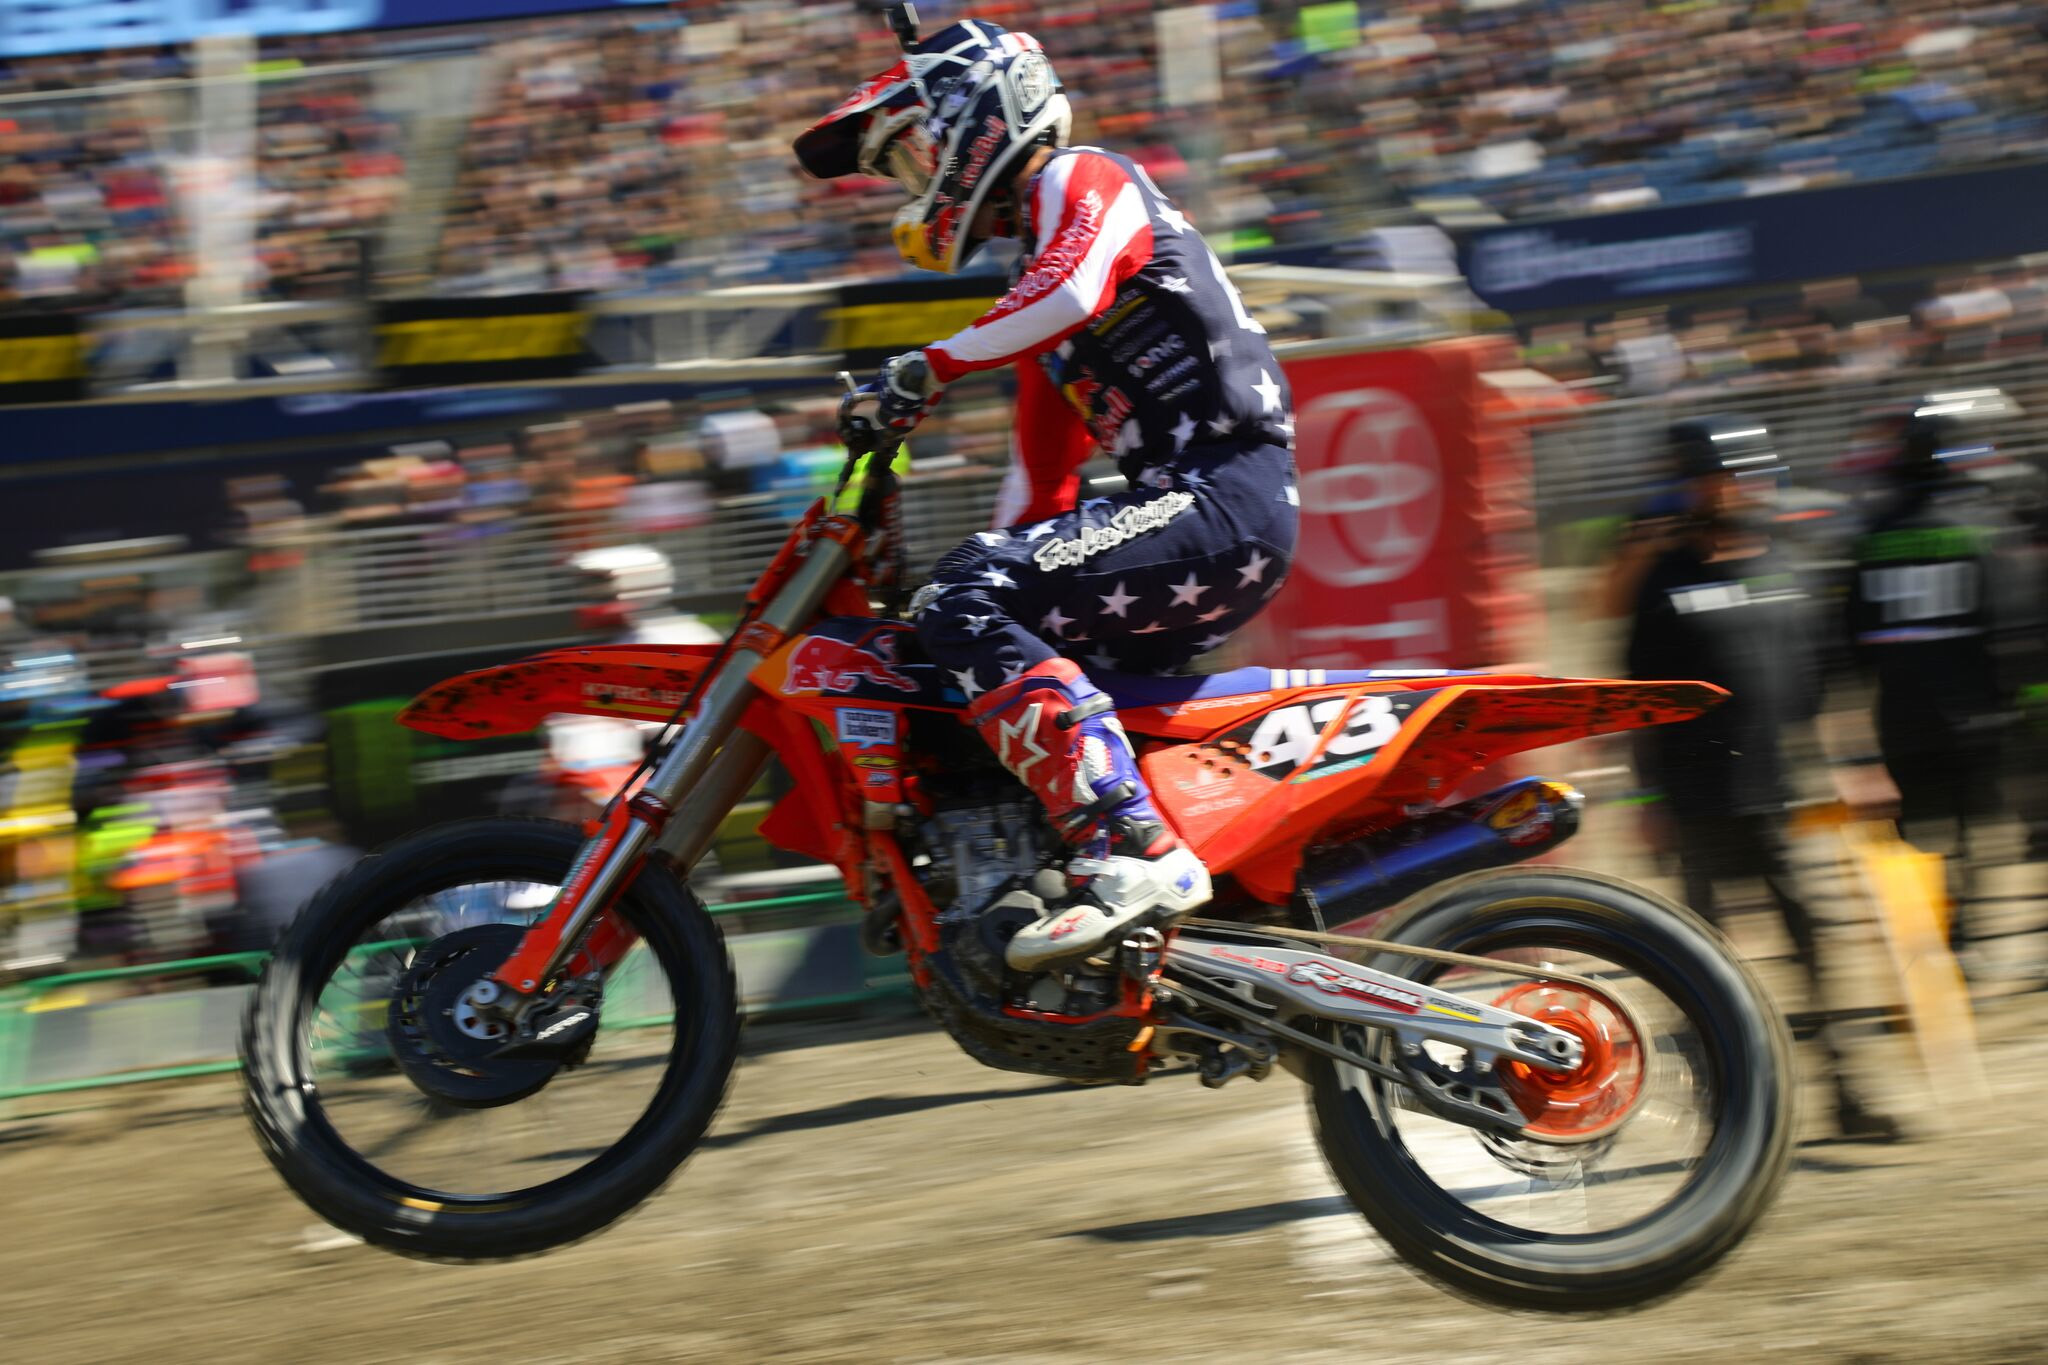 Cantrell fell into a groove last weekend and it carried over into the race in Foxborough